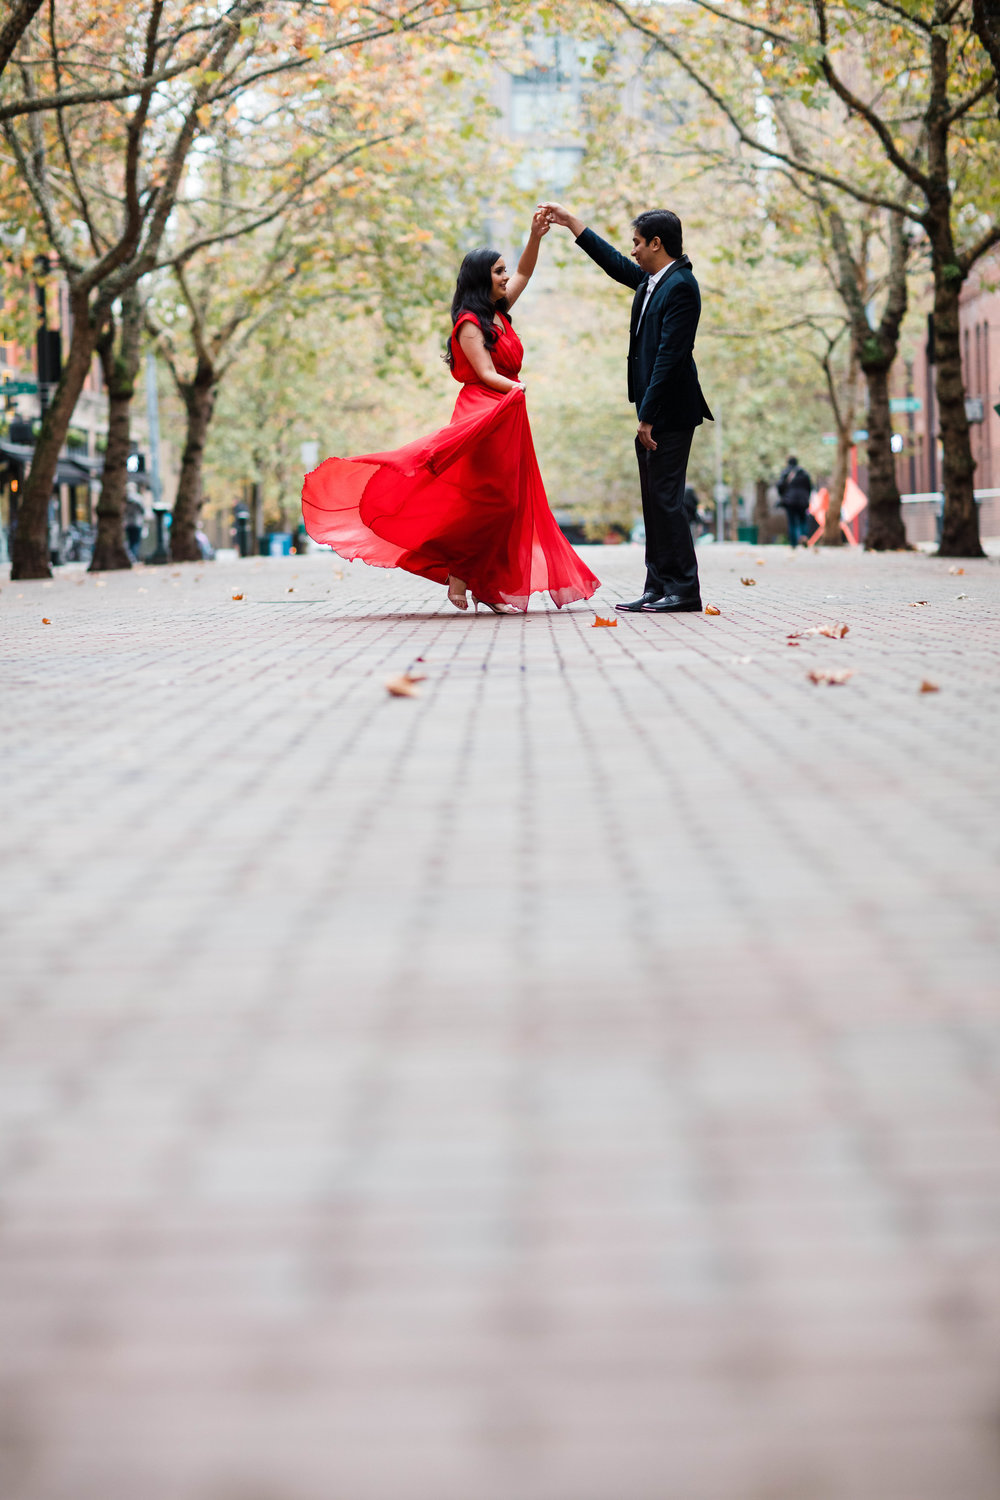 Sushat+Nancy_Engagement_Pioneer+Square_Sculpture+Park_Seattle_Oct2016_APW157.jpg